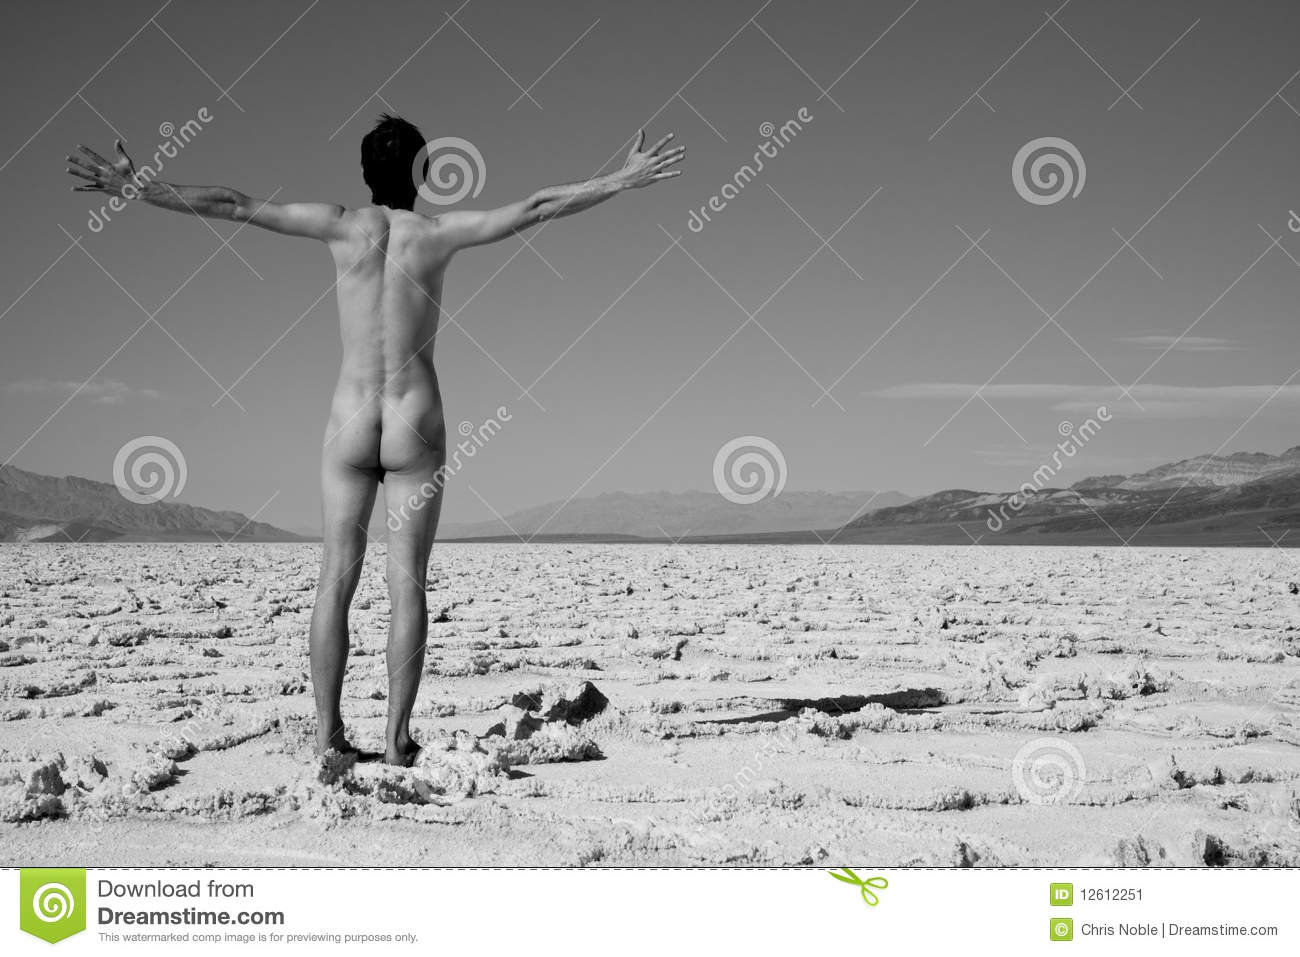 Naked man walking in Death Valley. Download preview